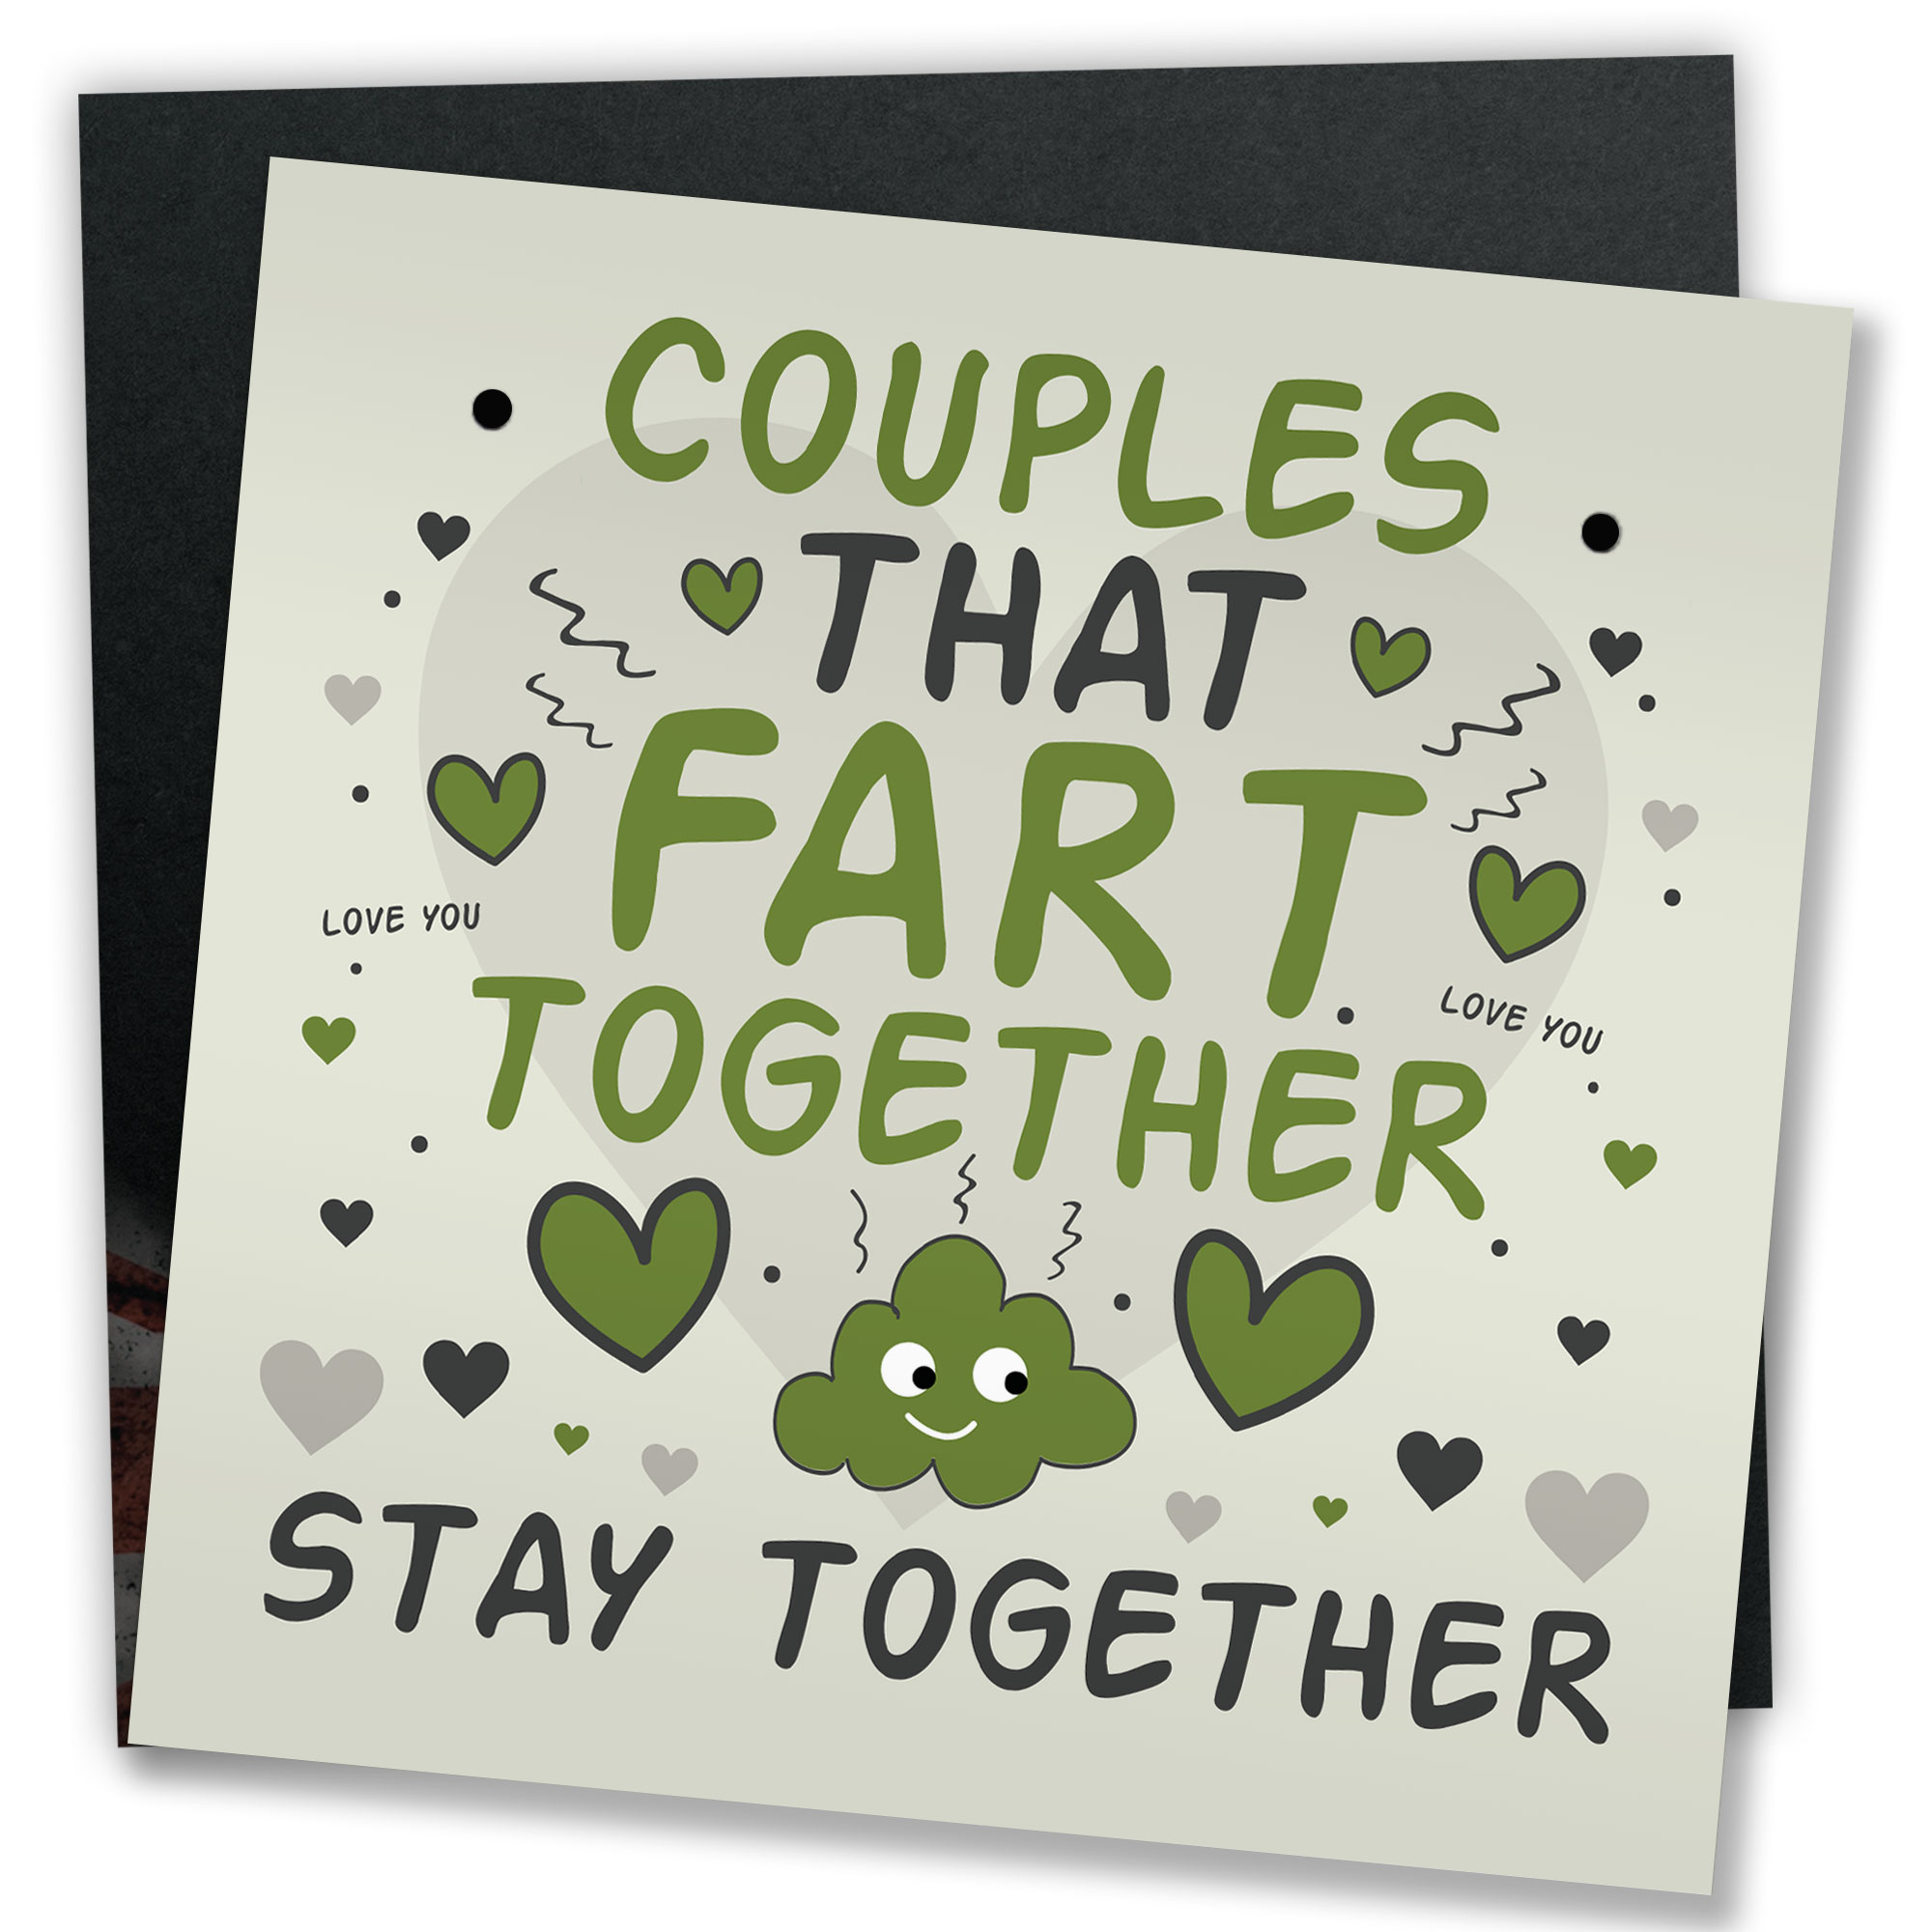 Birthday Card Ideas For Girlfriend Details About Funny Boyfriend Girlfriend Birthday Anniversary Card Gifts For Husband Wife